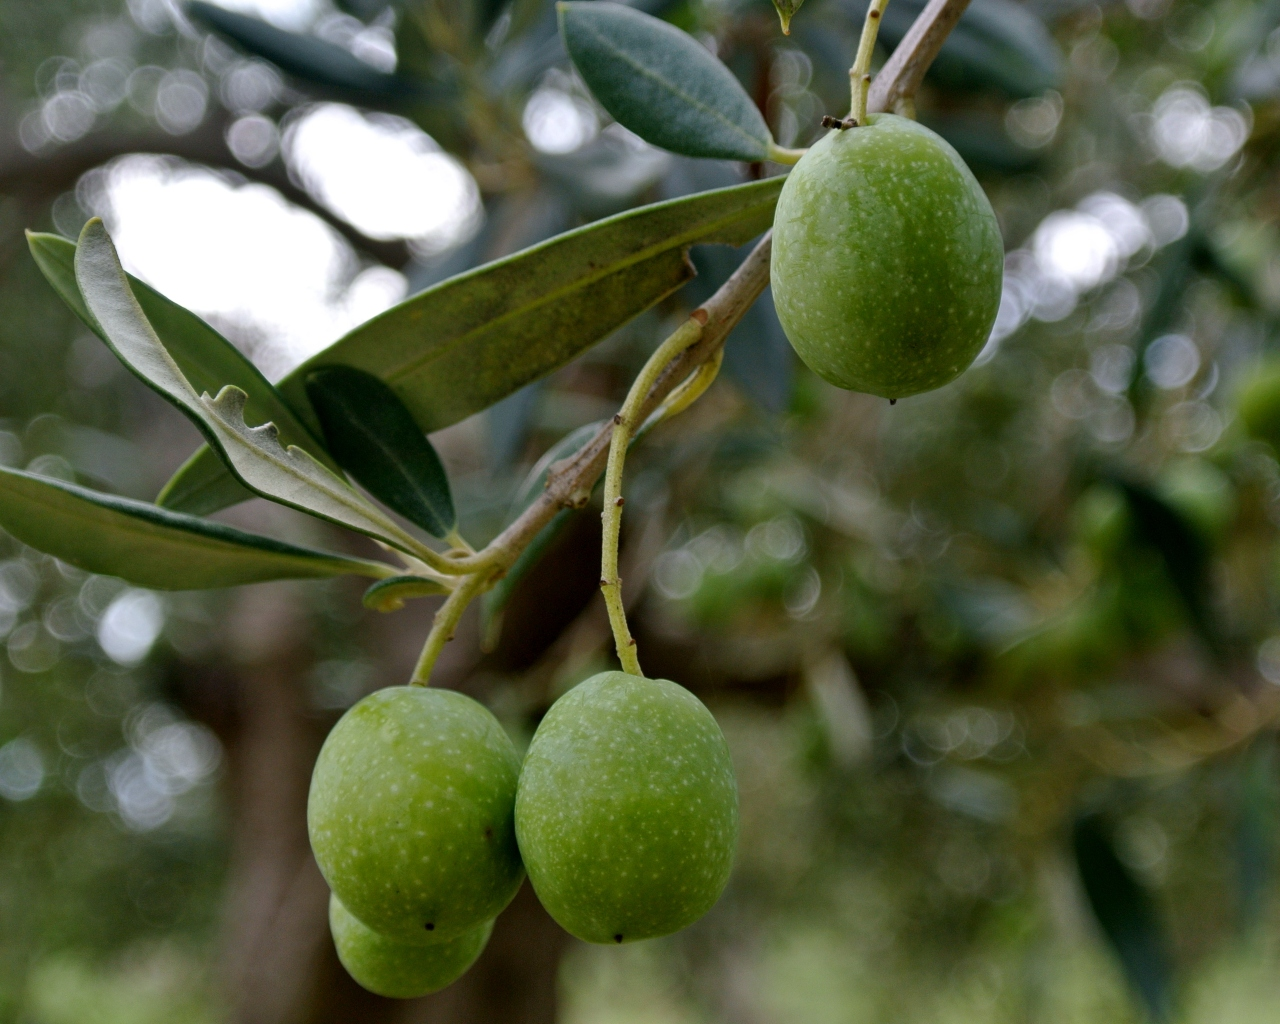 close up of green olives hanging on a tree